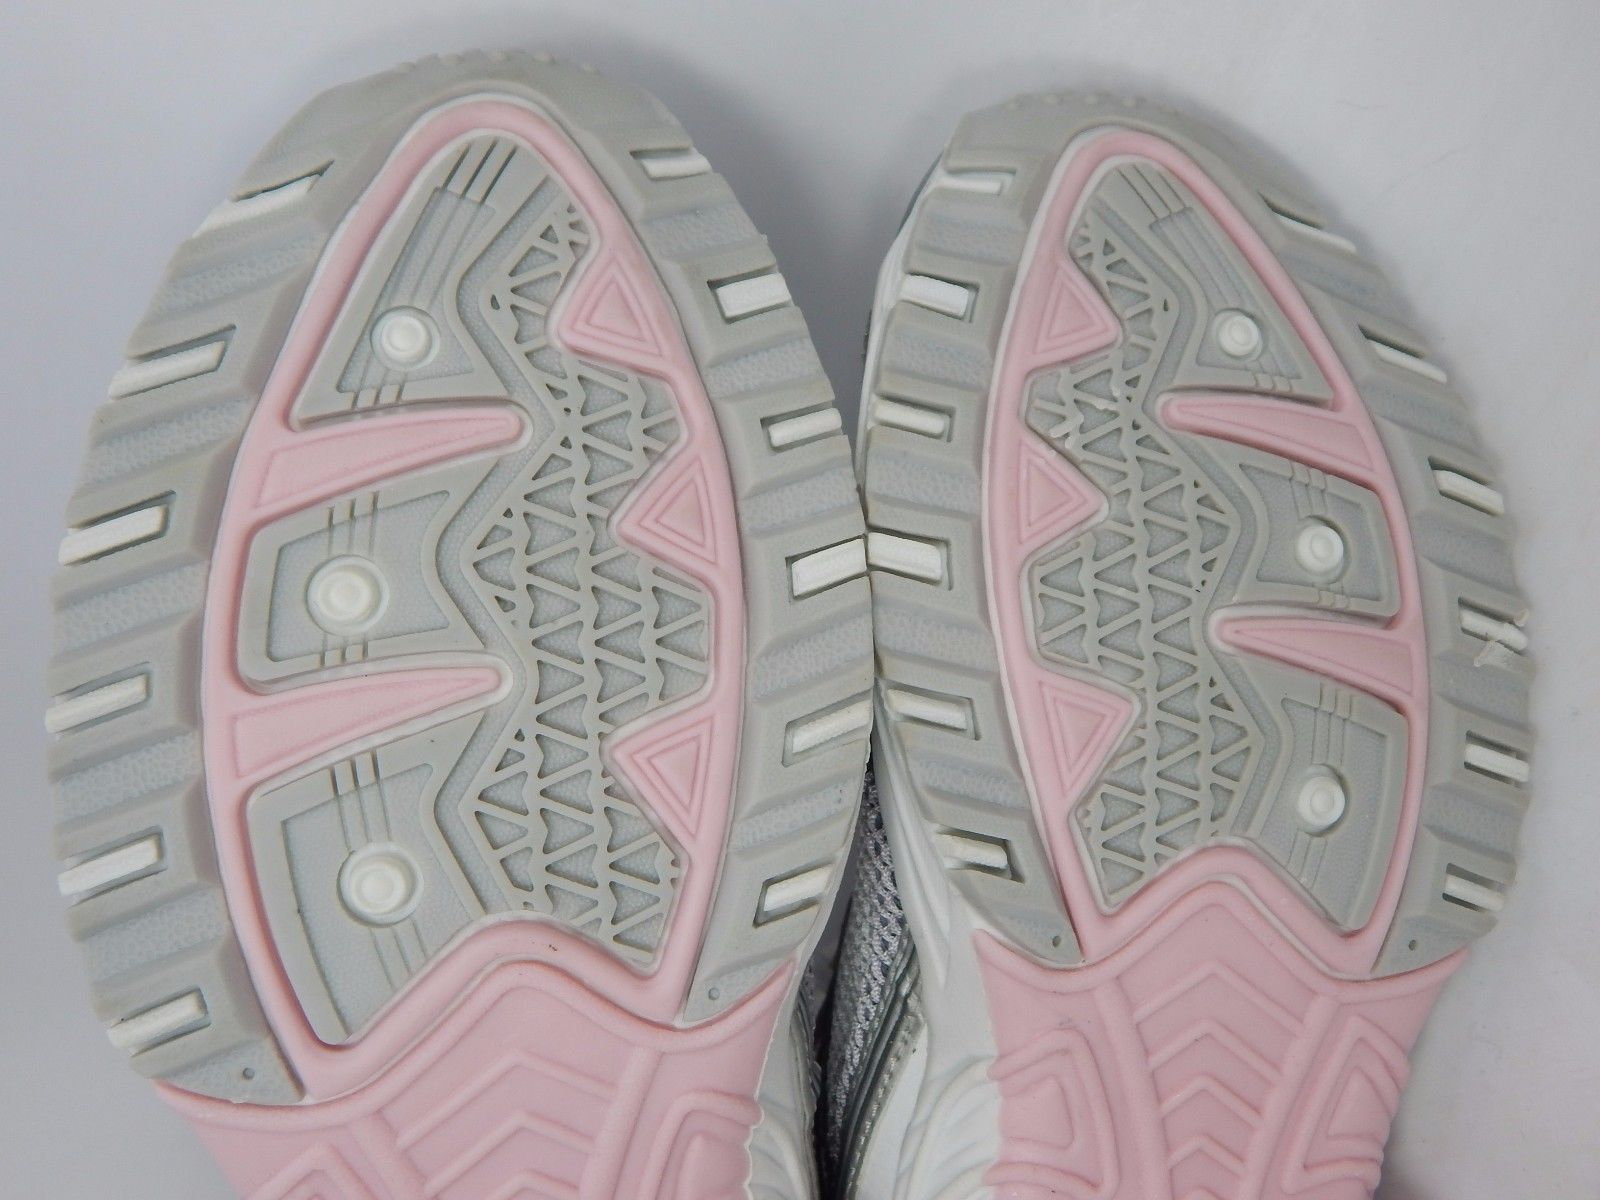 LA Gear Stride Women's Running Shoes Size US 8 M (B) EU 39 White Gray Pink